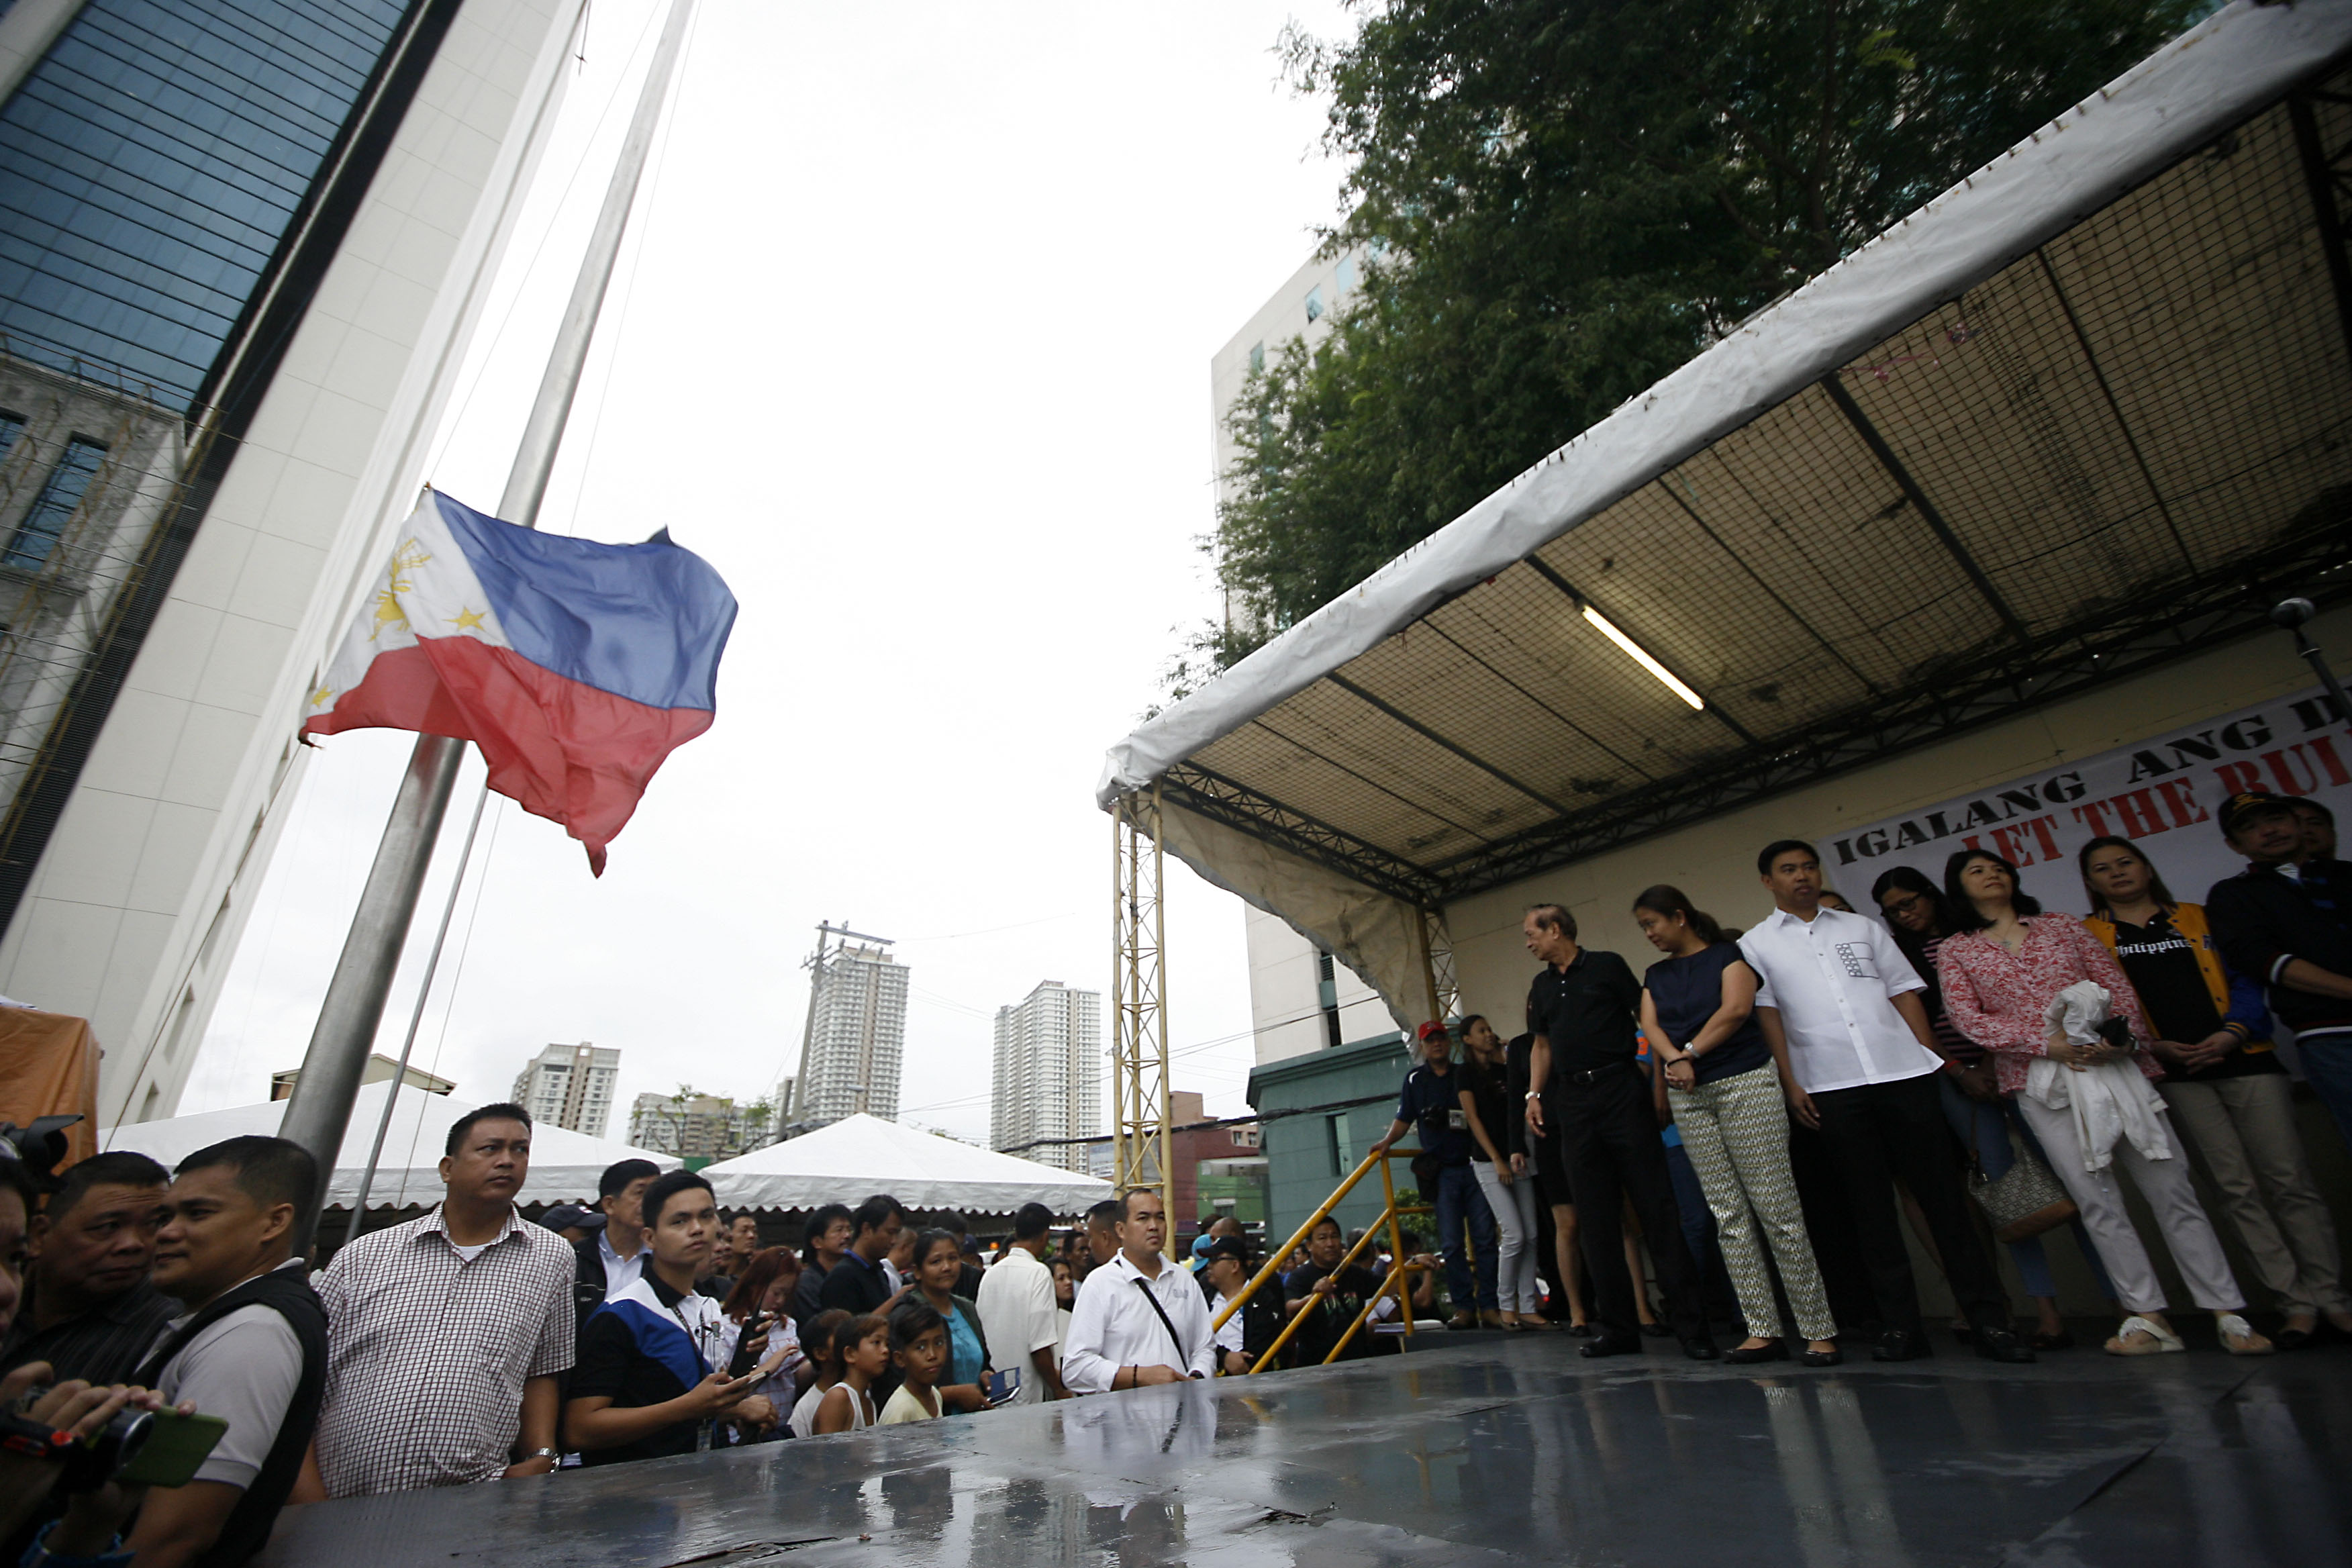 Makati City mayor Junjun Binay attends the flag raising ceremony with sister, Senator Nancy Binay, and other supporters at the new Makati city hall grounds on Monday. Photo by Ben Nabong/Rappler